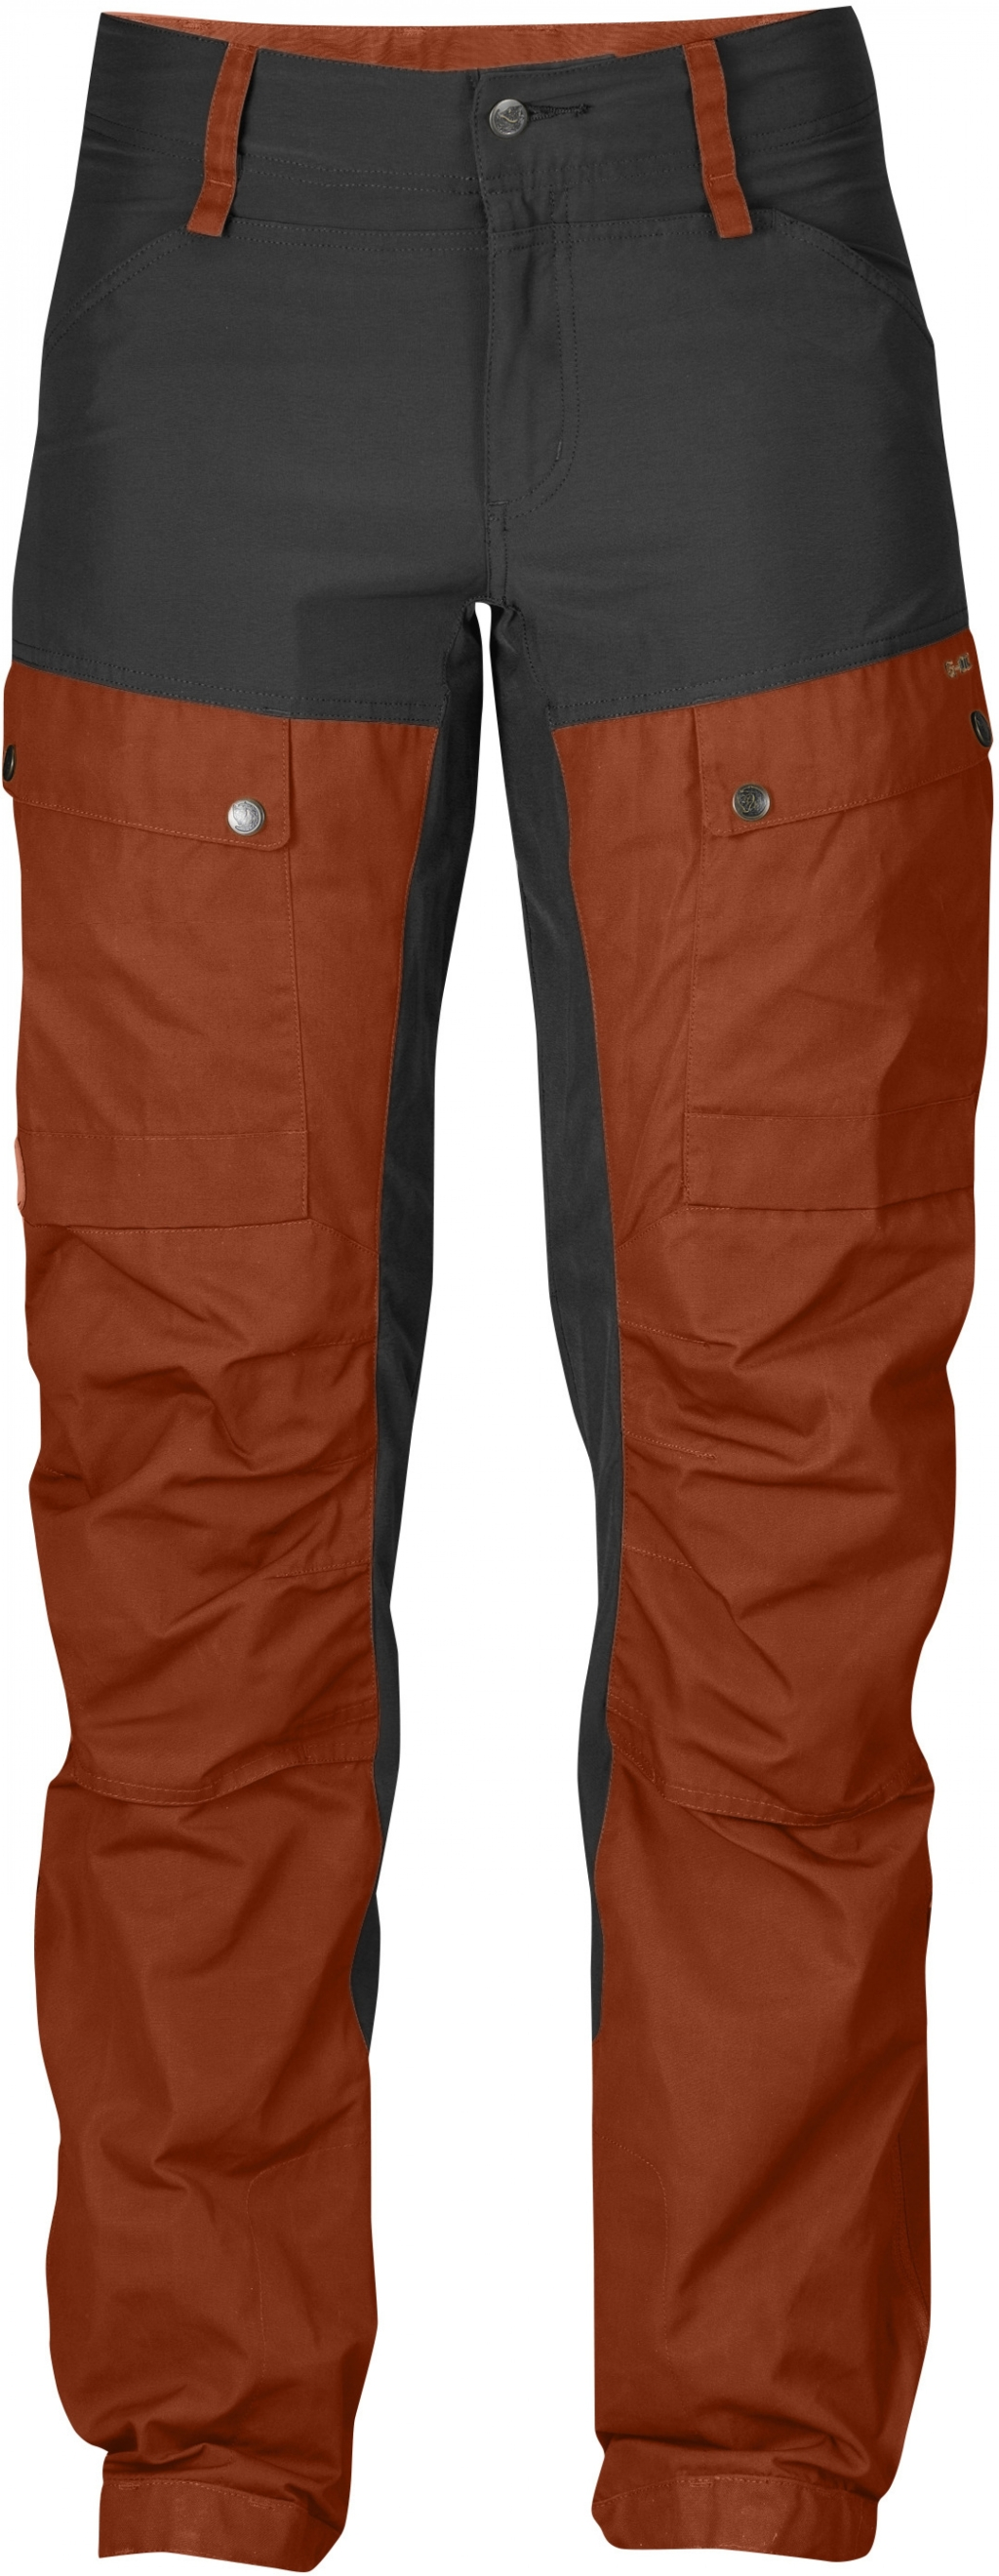 FjallRaven Keb Trousers W Short Autumn Leaf-30